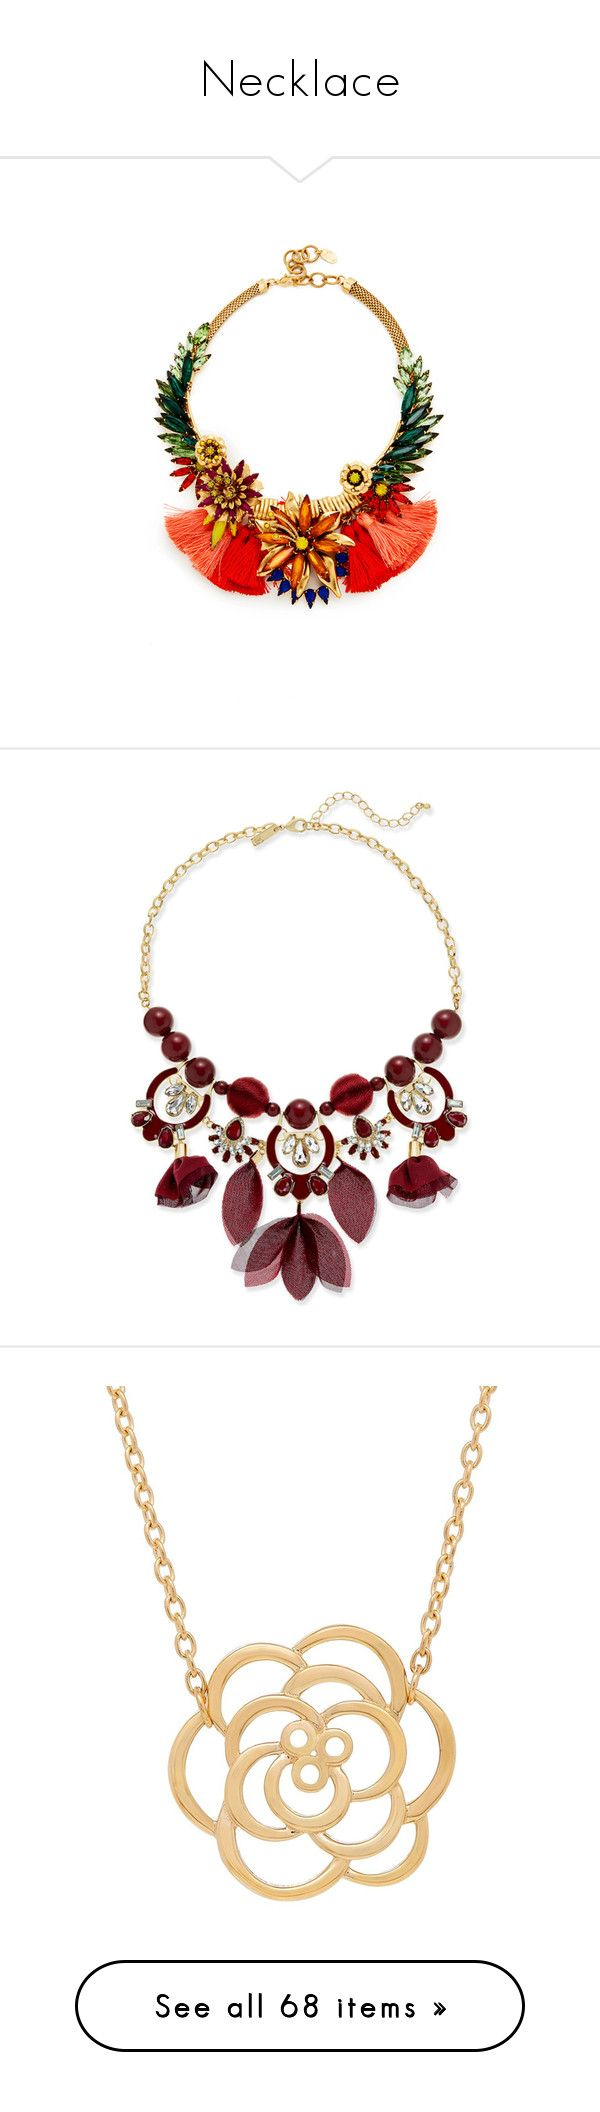 """""""Necklace"""" by annanikolova ❤ liked on Polyvore featuring jewelry, necklaces, accessories, tropical, tassel jewelry, 24 karat gold necklace, elizabeth cole jewelry, lobster clasp necklace, 24-karat gold jewelry and burgundy"""